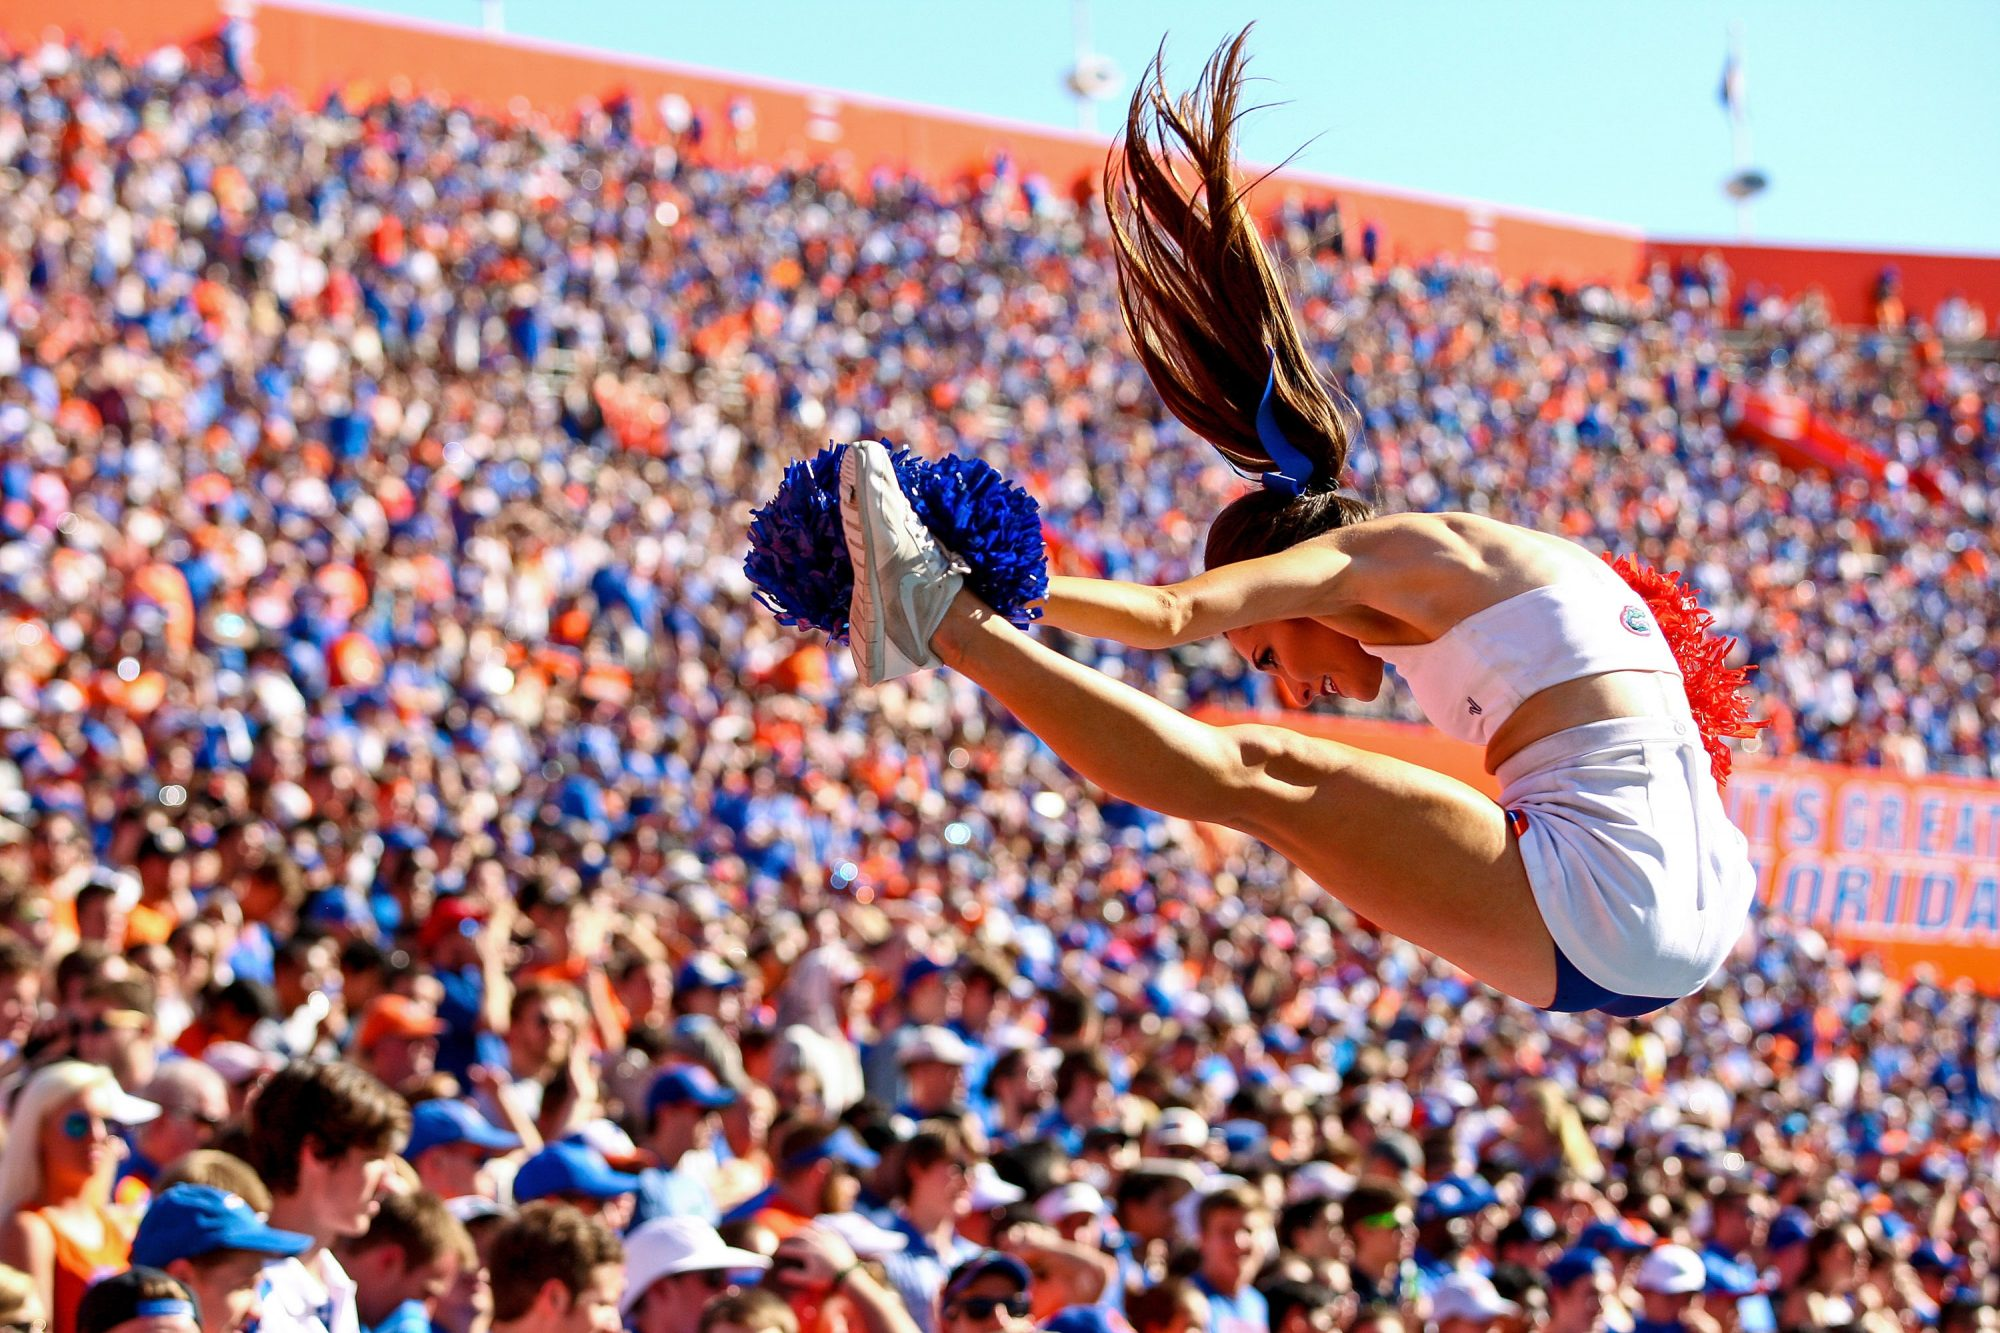 A Florida Gators cheerleader is tossed in the air during the second half of the game against the Vanderbilt Commodores at Ben Hill Griffin Stadium on November 7, 2015 in Gainesville, Florida.